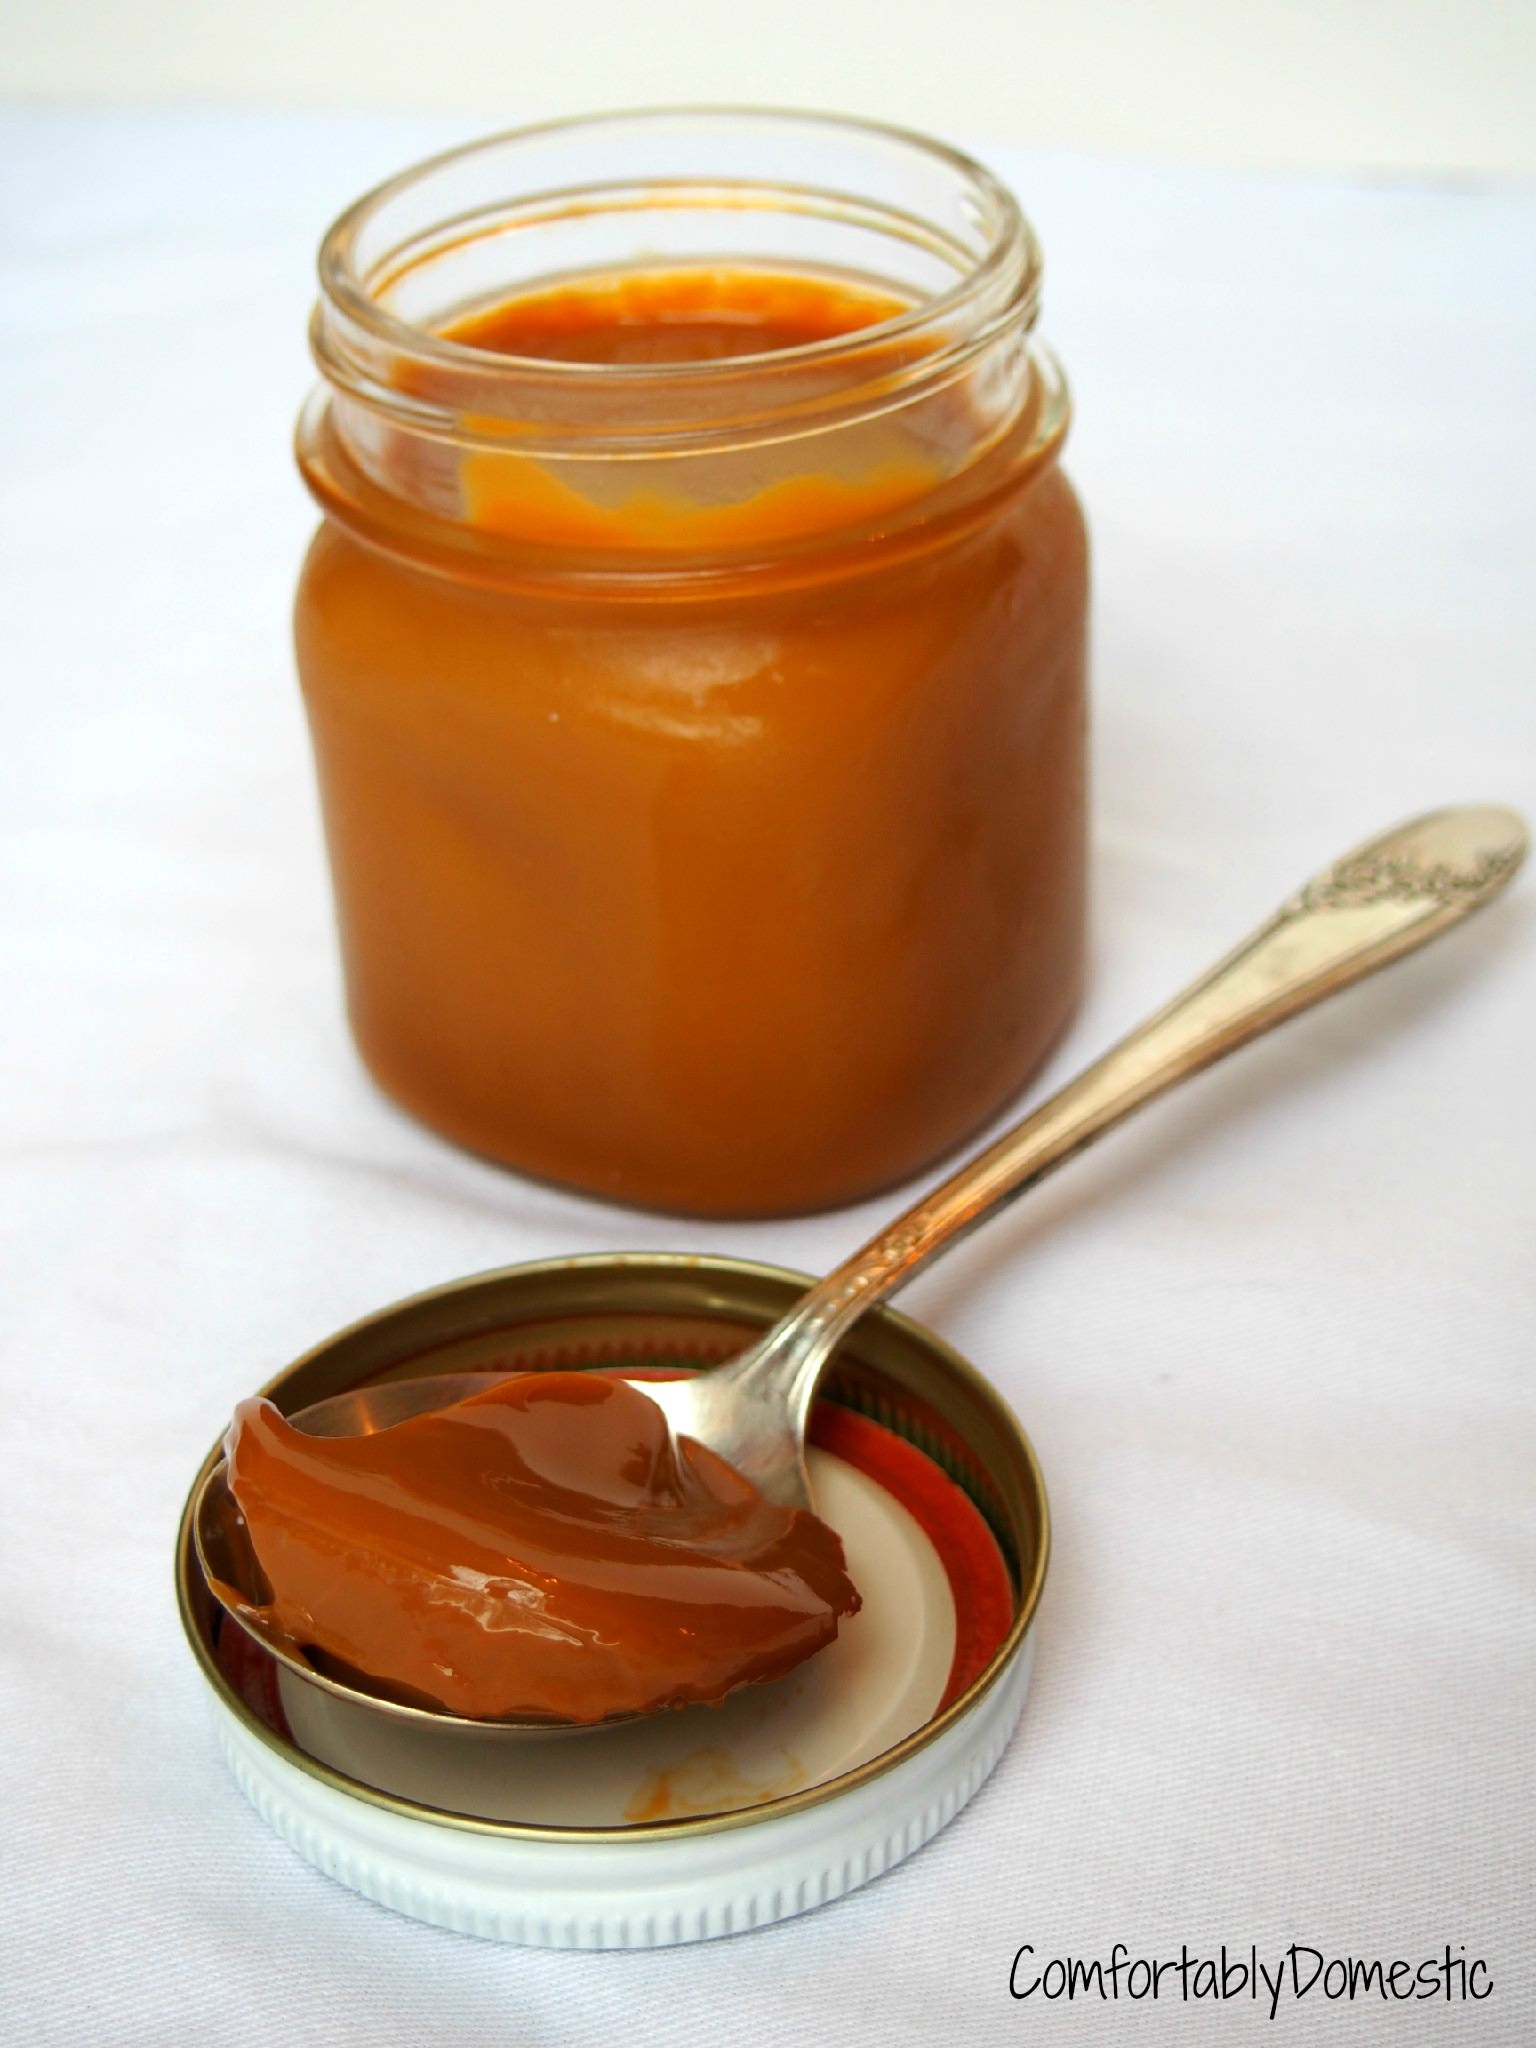 Dulce de Leche Caramel made in the crock pot from ComfortablyDomestic.com